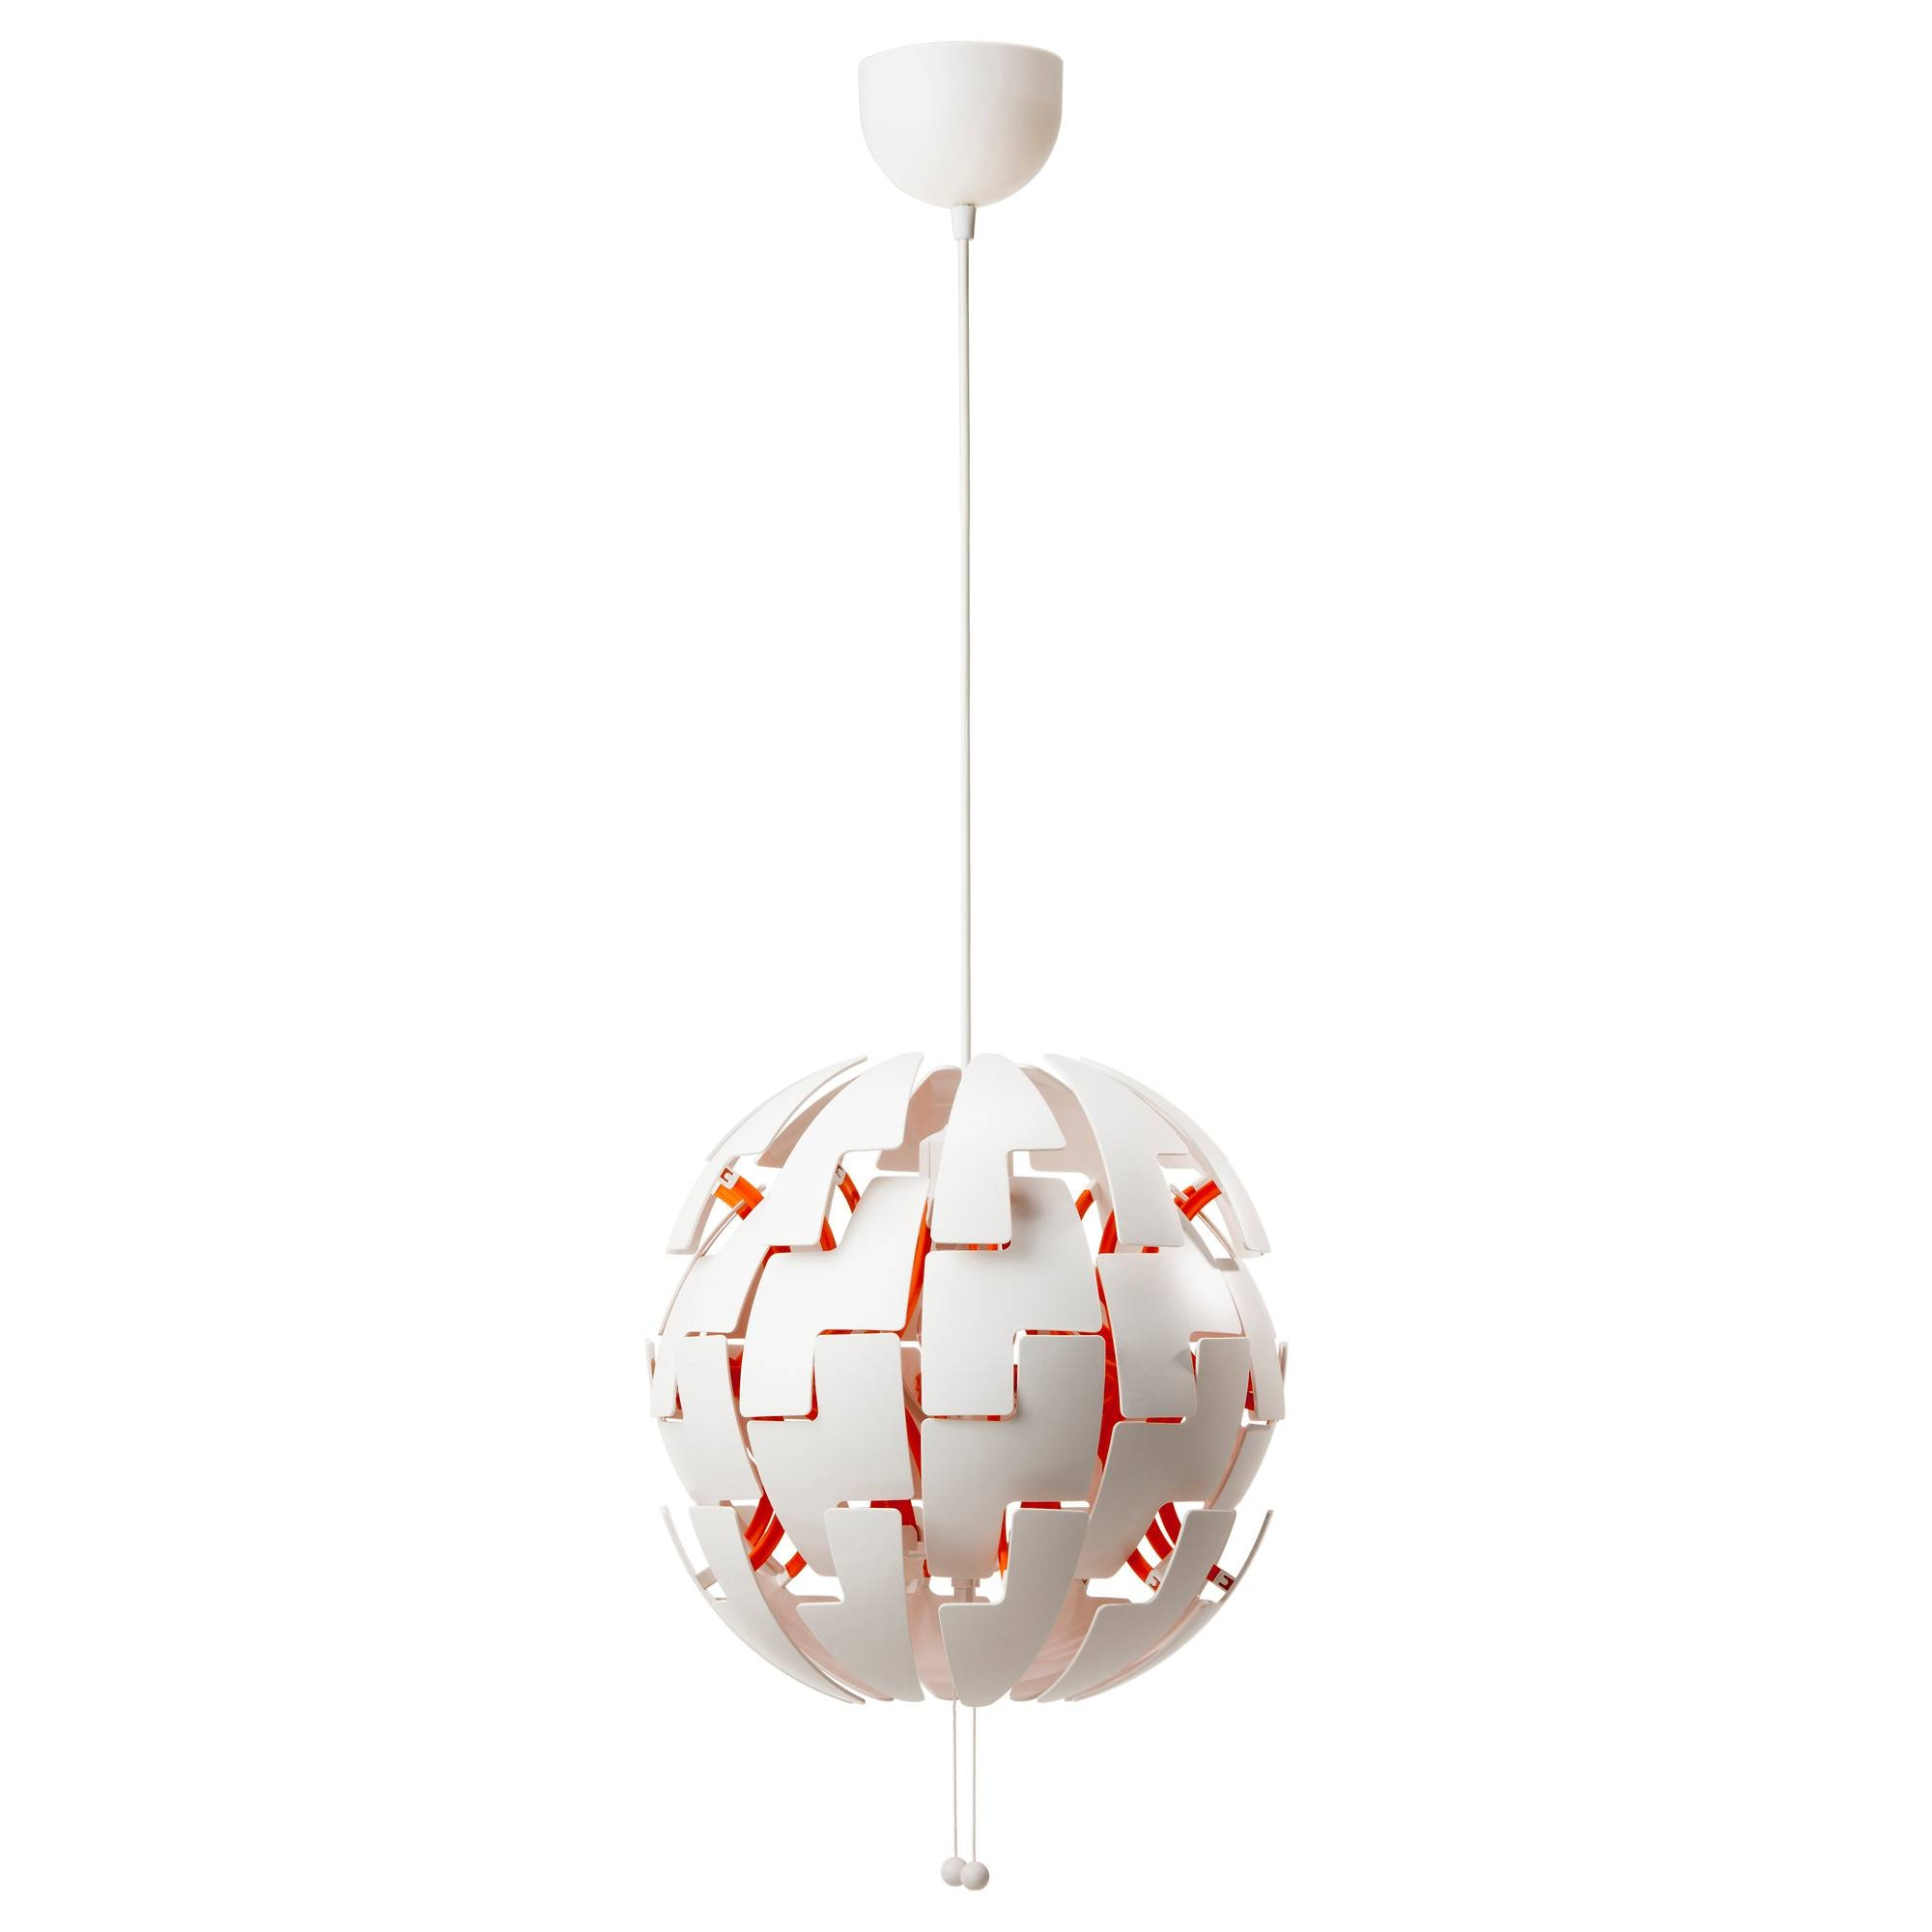 Pendant Lighting | Pendant Lamps & Chandeliers | Ikea inside Ikea Globe Pendant Lights (Image 12 of 15)